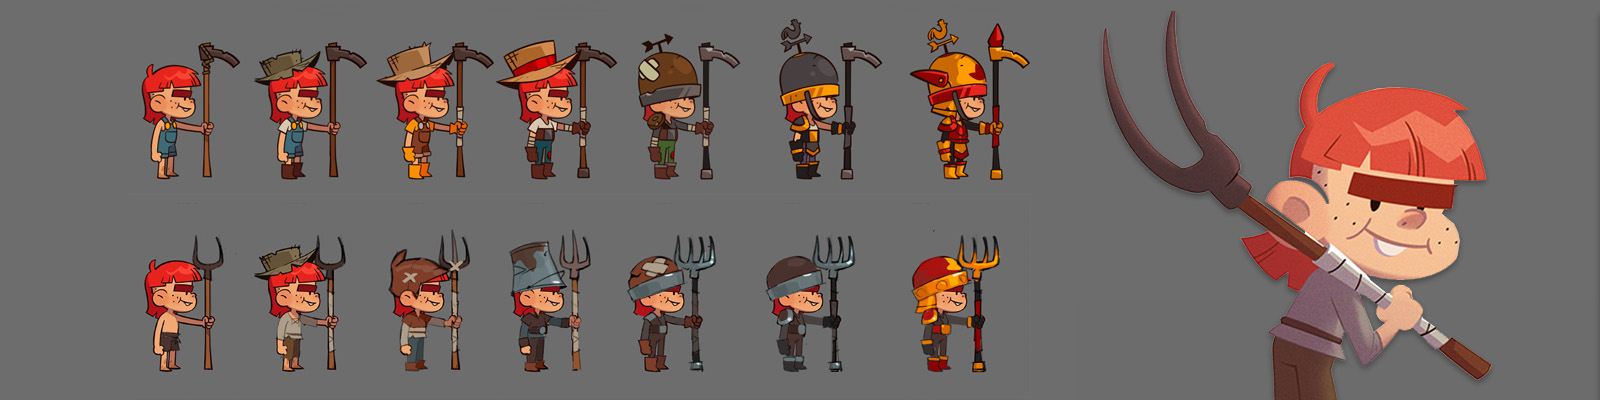 Devblog: Designing Oy, Almost a Hero's two-in-one Defender